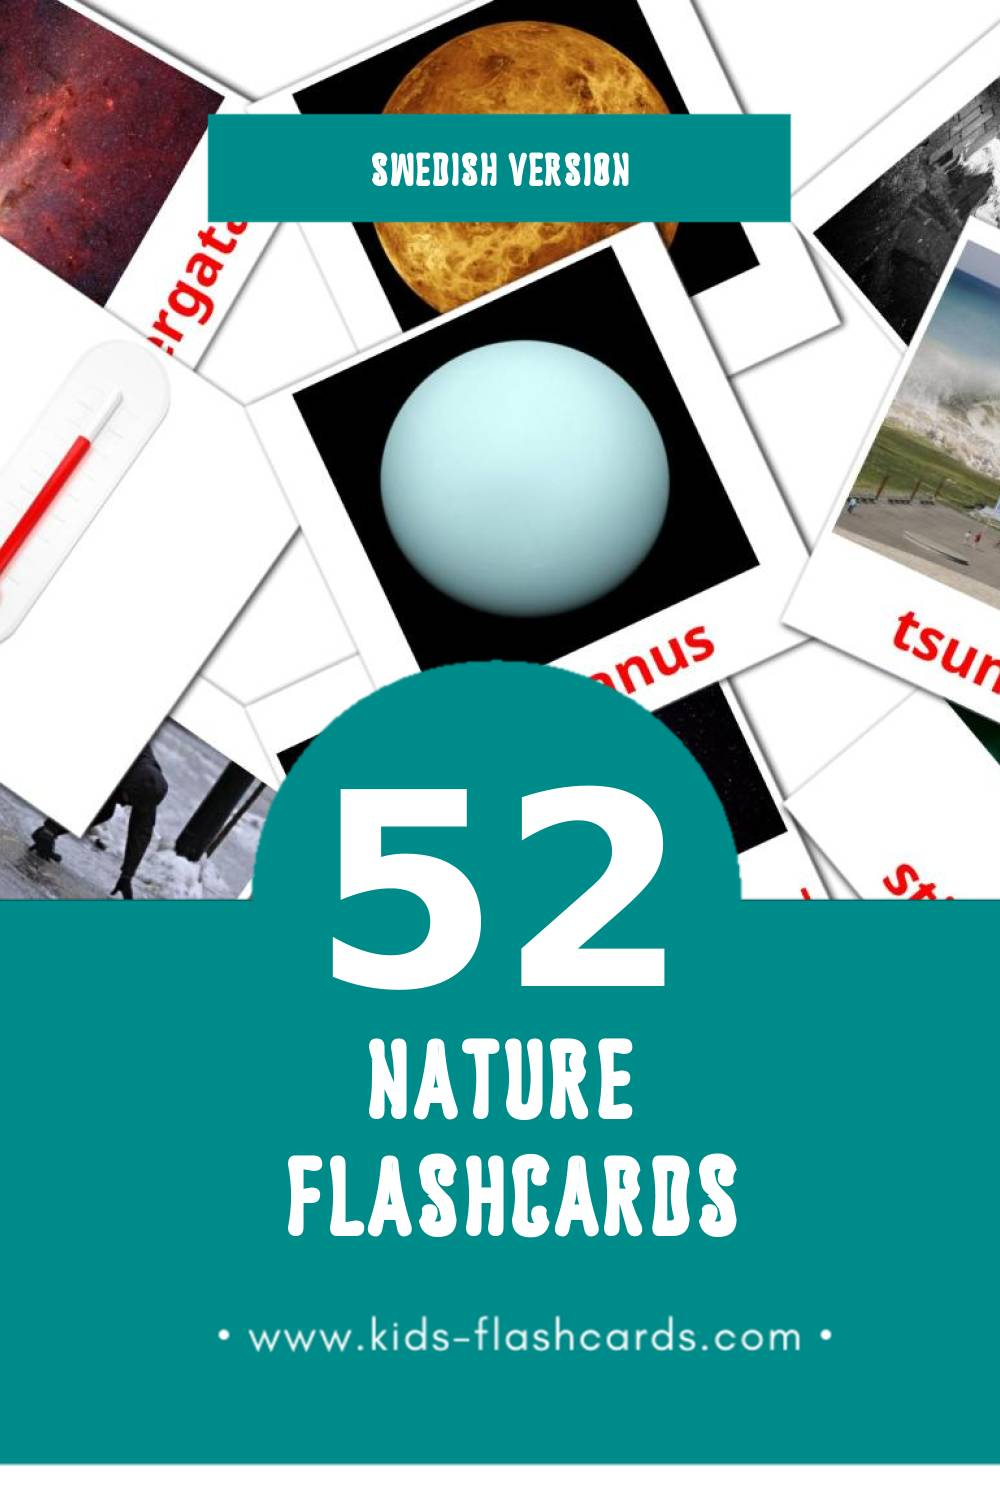 Visual Natur Flashcards for Toddlers (31 cards in Swedish)